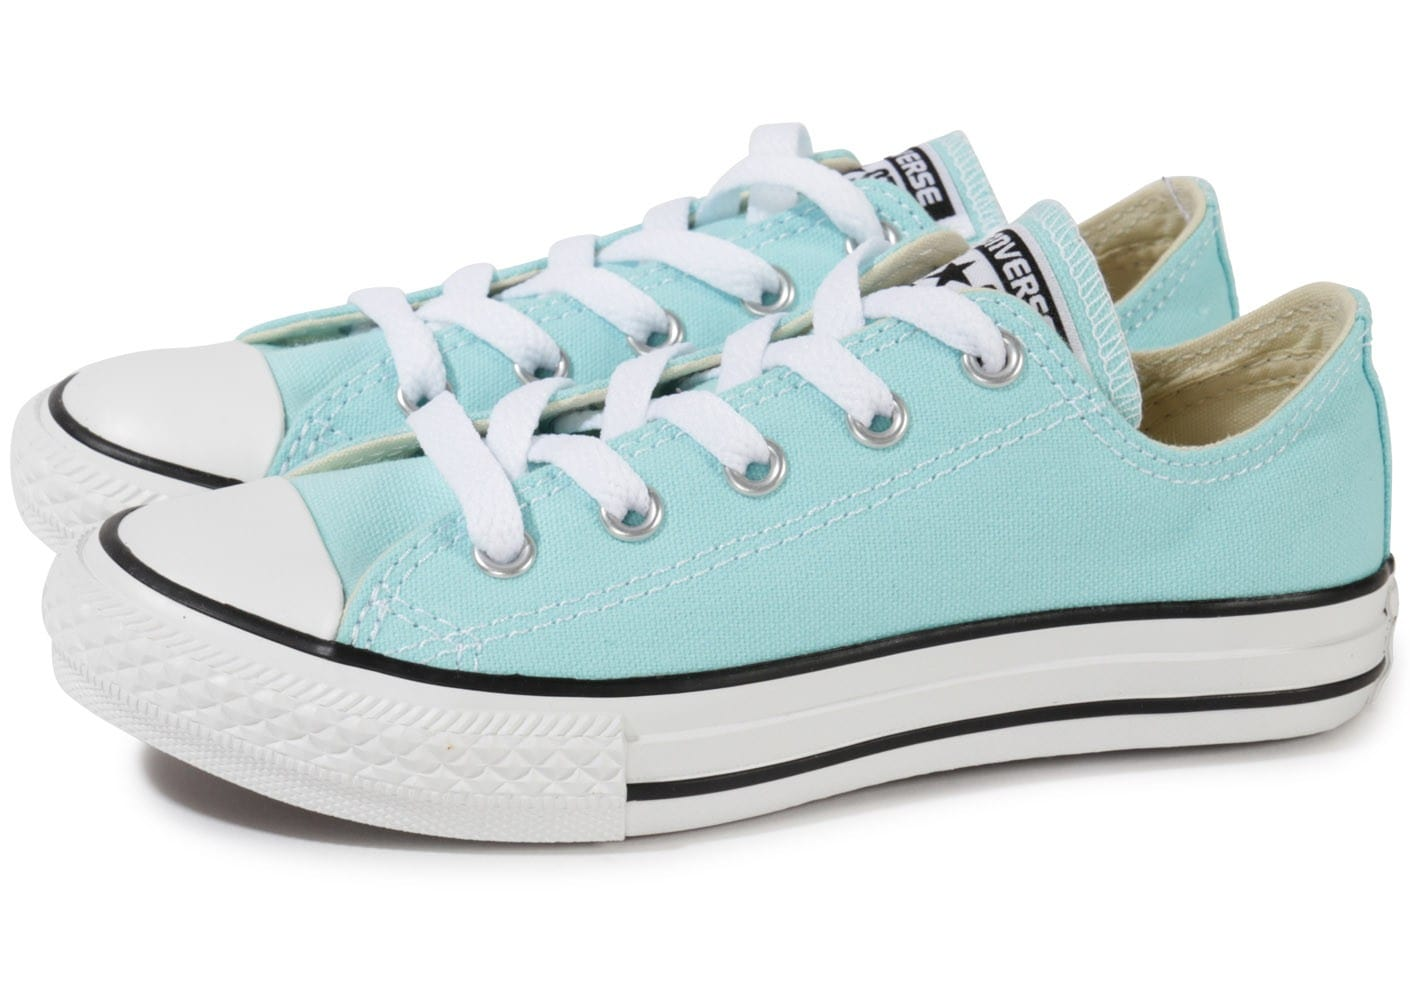 converse chuck taylor all star enfant bleu ciel chaussures chaussures chausport. Black Bedroom Furniture Sets. Home Design Ideas